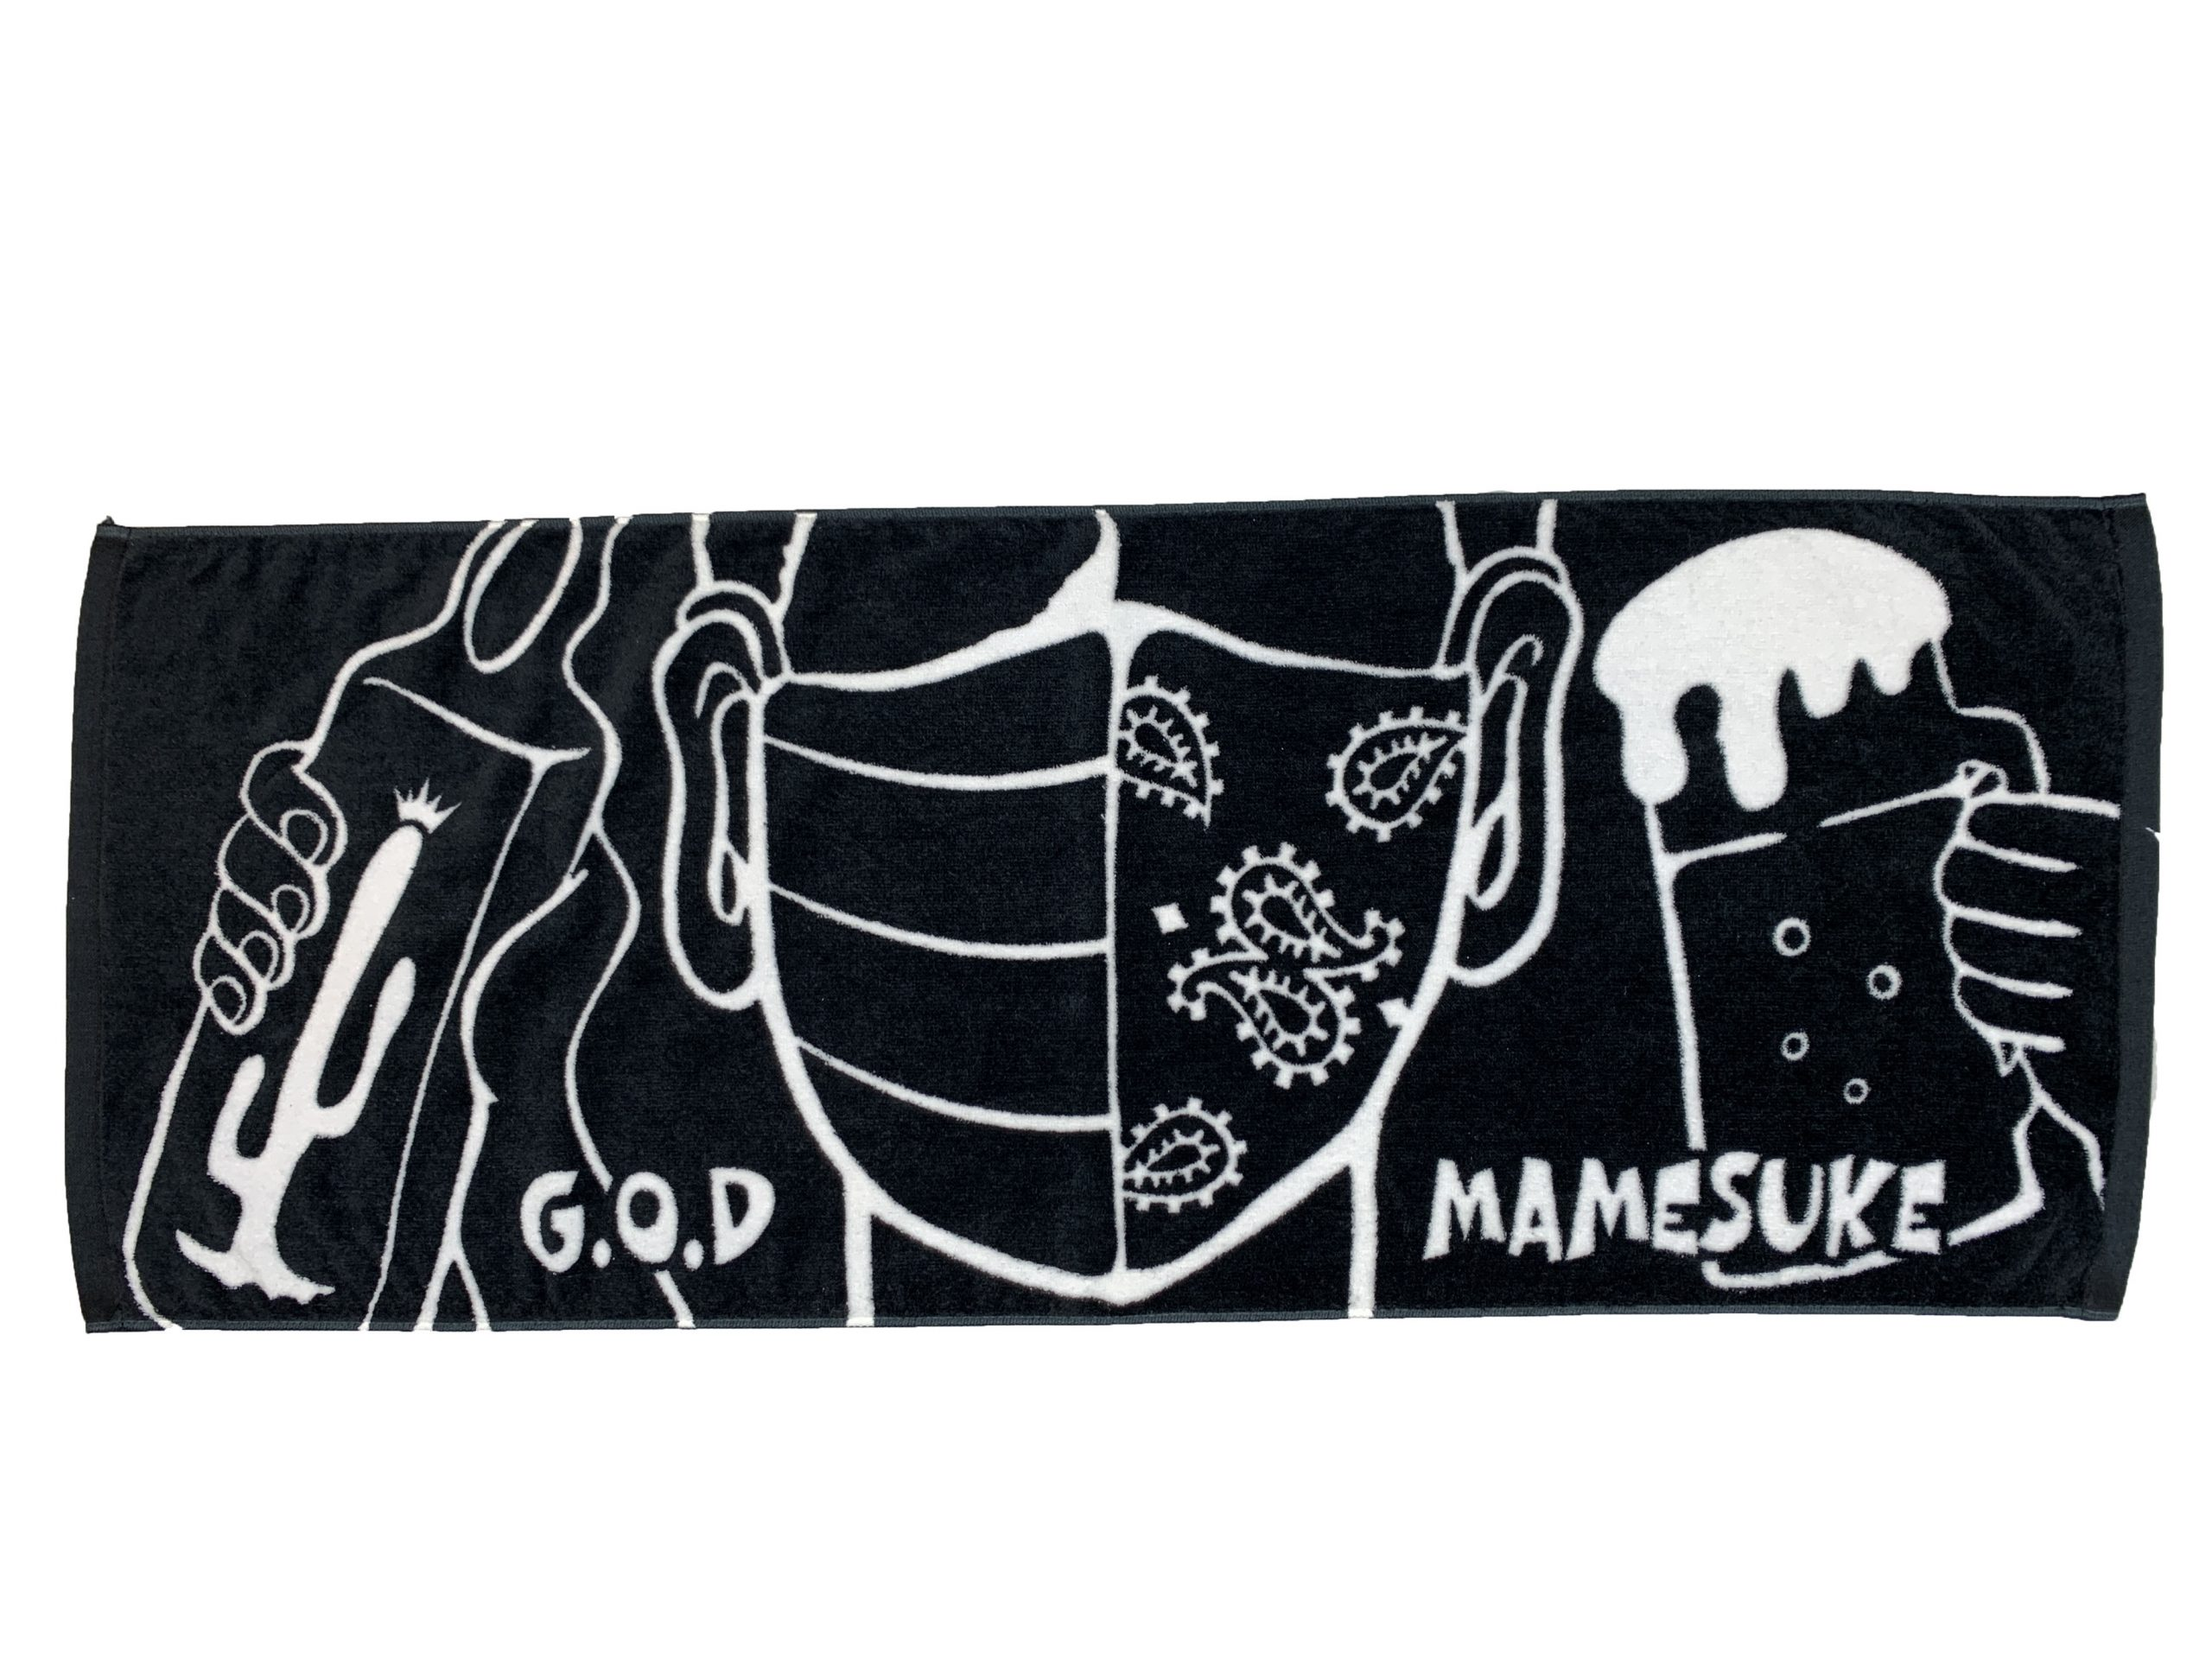 mamesuke_god_towel